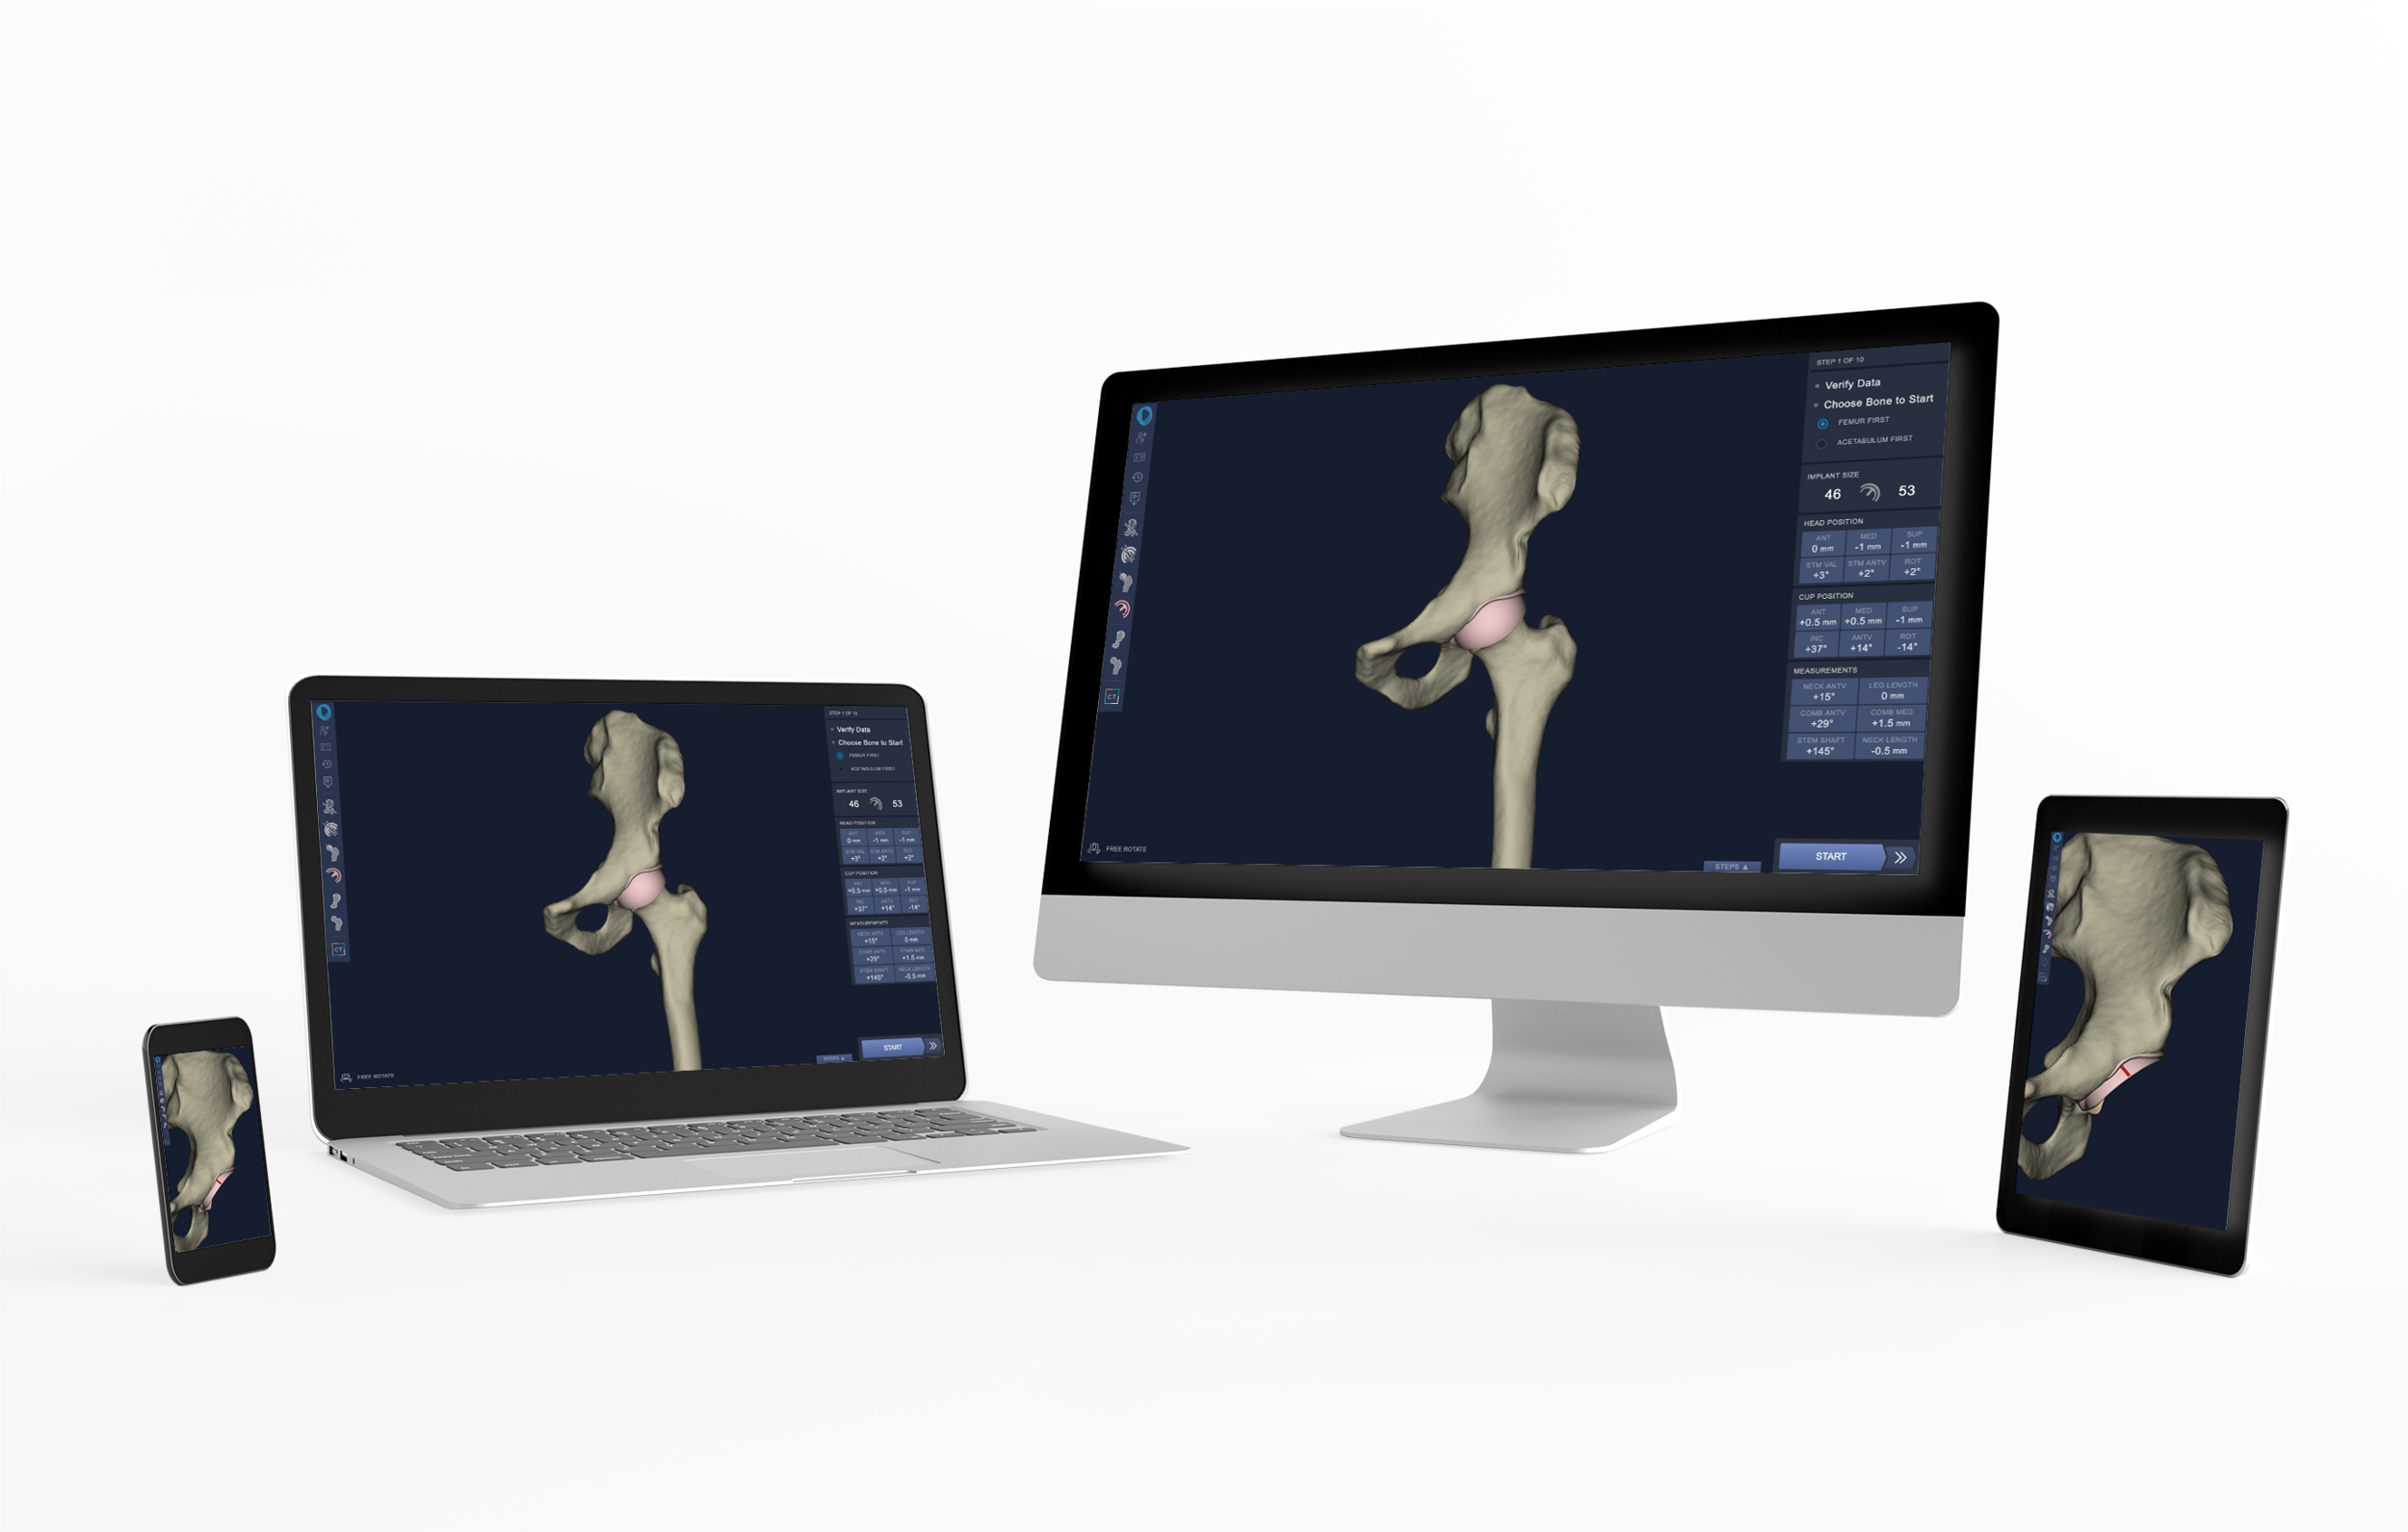 Better software - Our surgical planning tools allows surgeons to make up-front decisions about implant size and position, so they can focus on the patient during surgery.read more